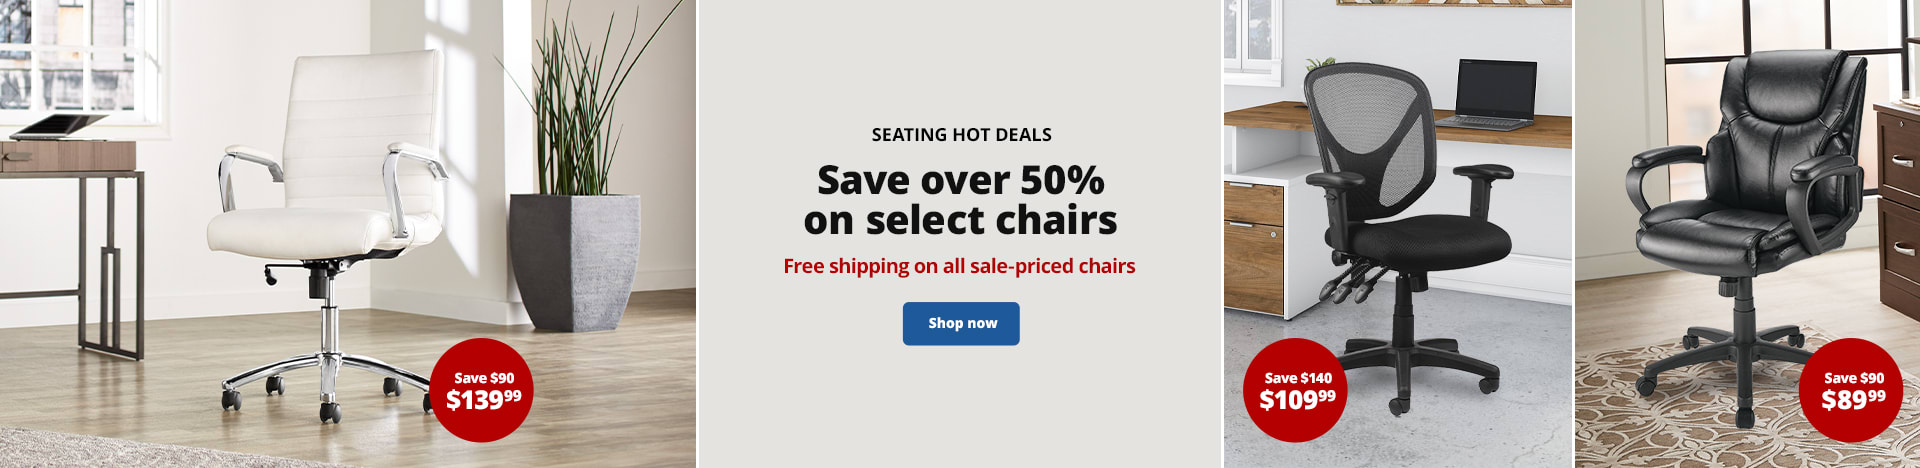 Seating Hot Deals. Save over 50% on select chairs. Free shipping on all sale-priced chairs